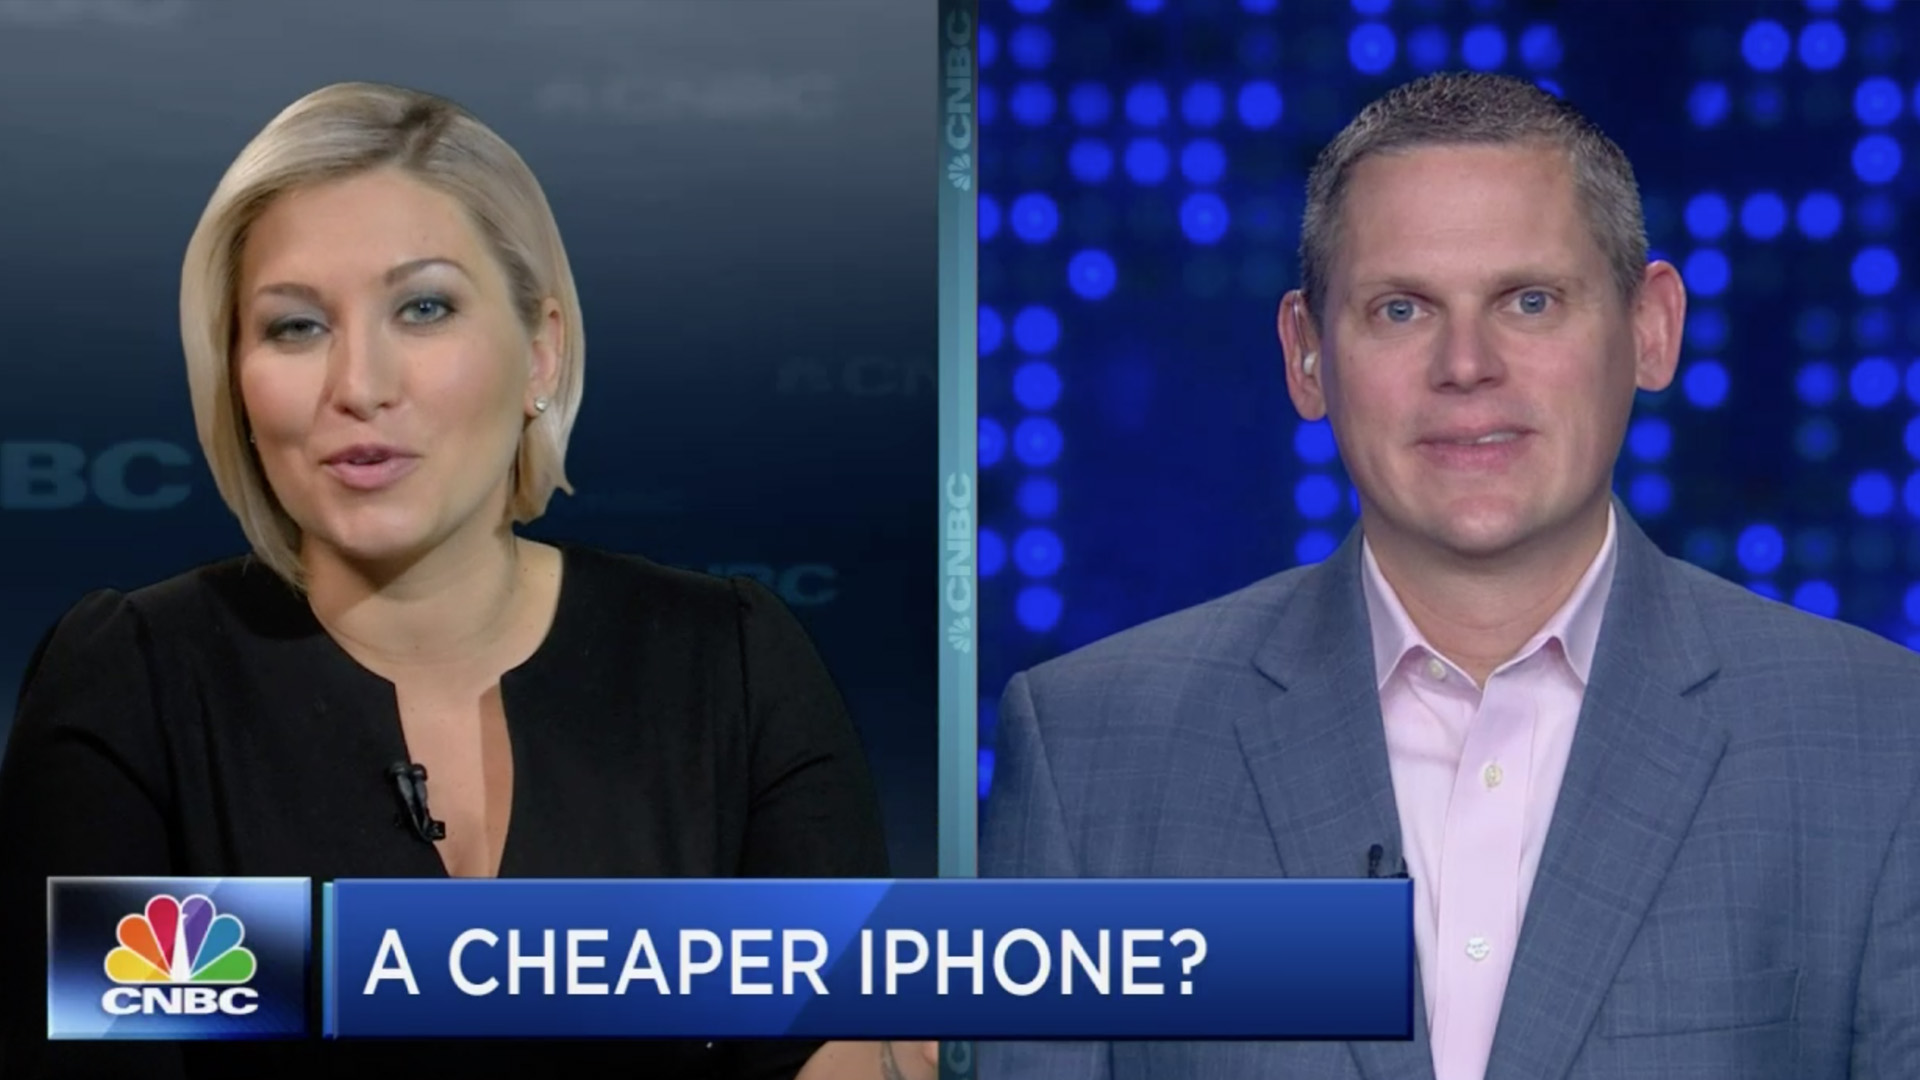 A Cheaper iPhone